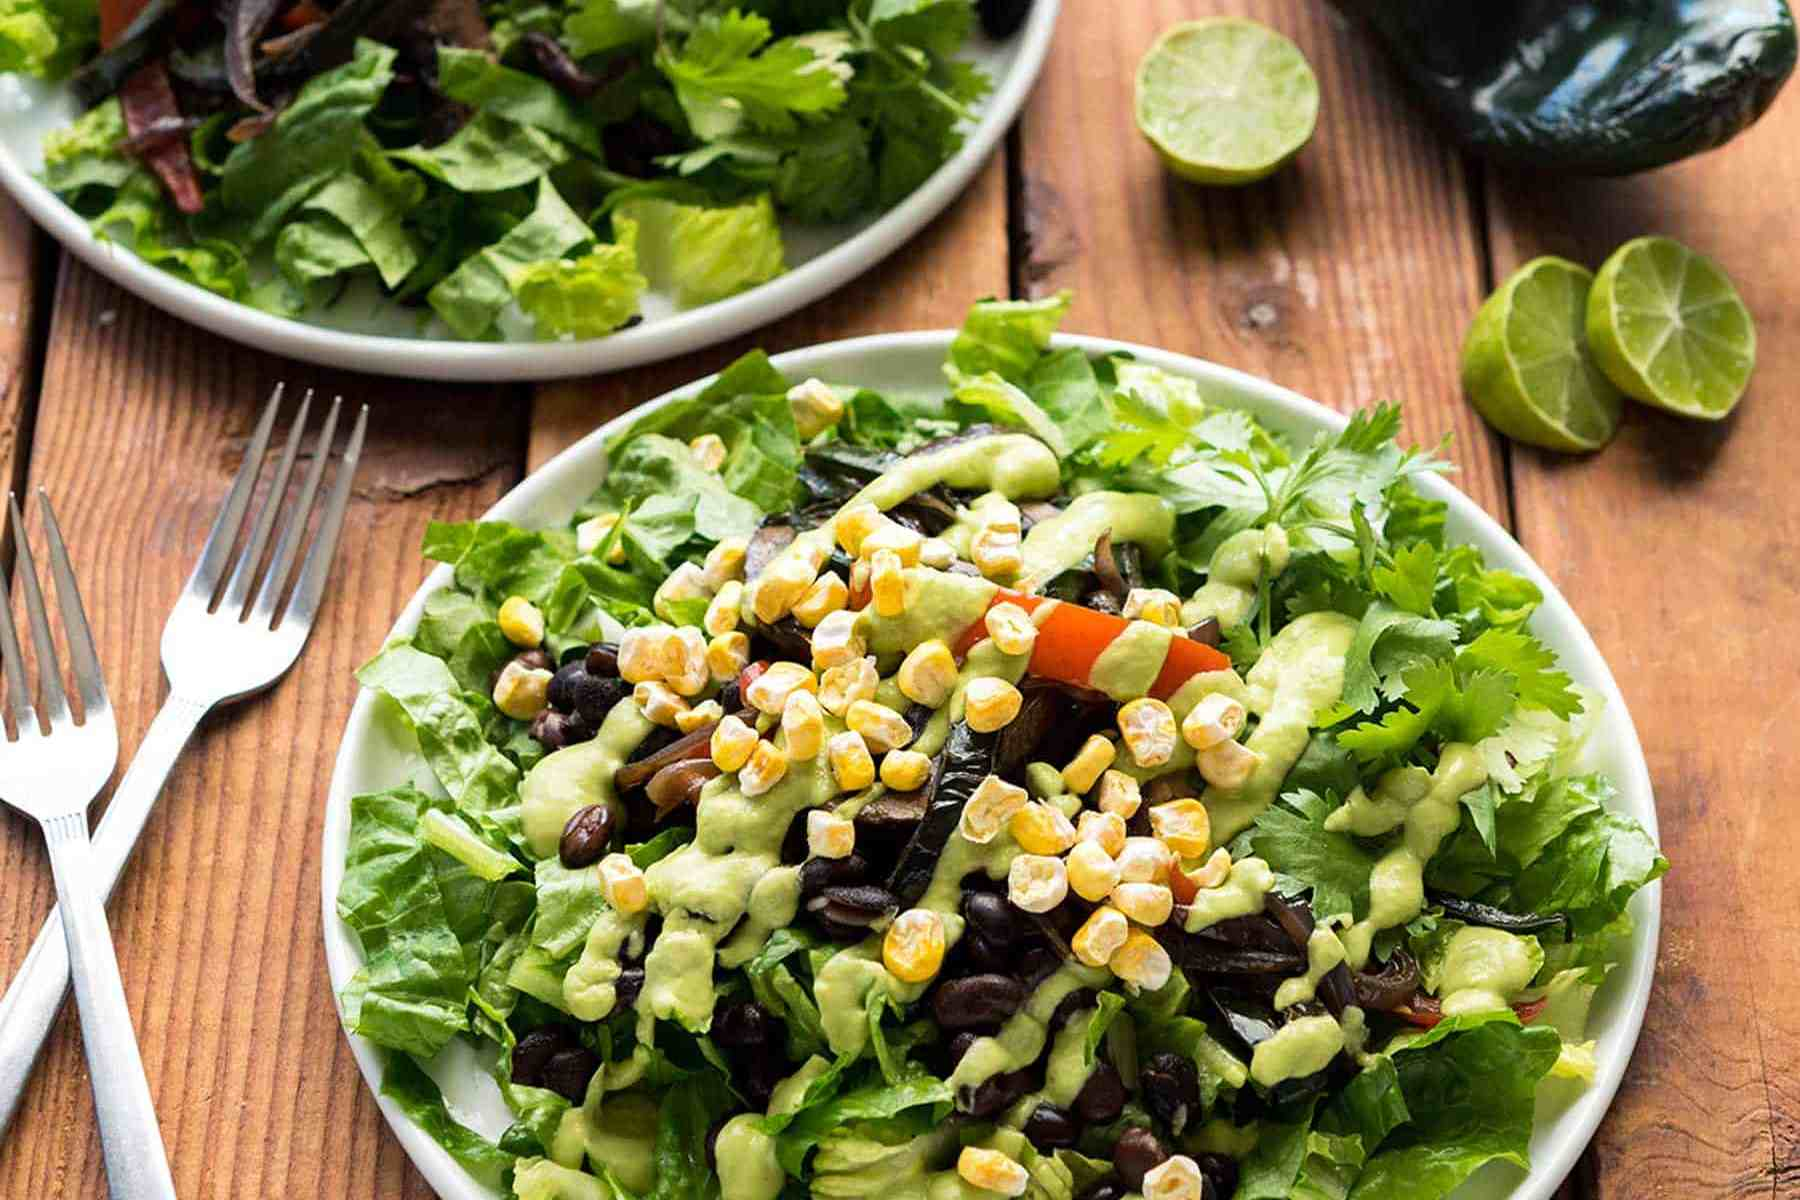 Need dinner in a pinch? This Portobello Fajita Salad from Vegan Yack Attack On the Go! is packed with flavor and comes together in under 30 minutes. You'll want the creamy avocado dressing on everything! Soy-free, Gluten-free, and Nut-free, to boot!